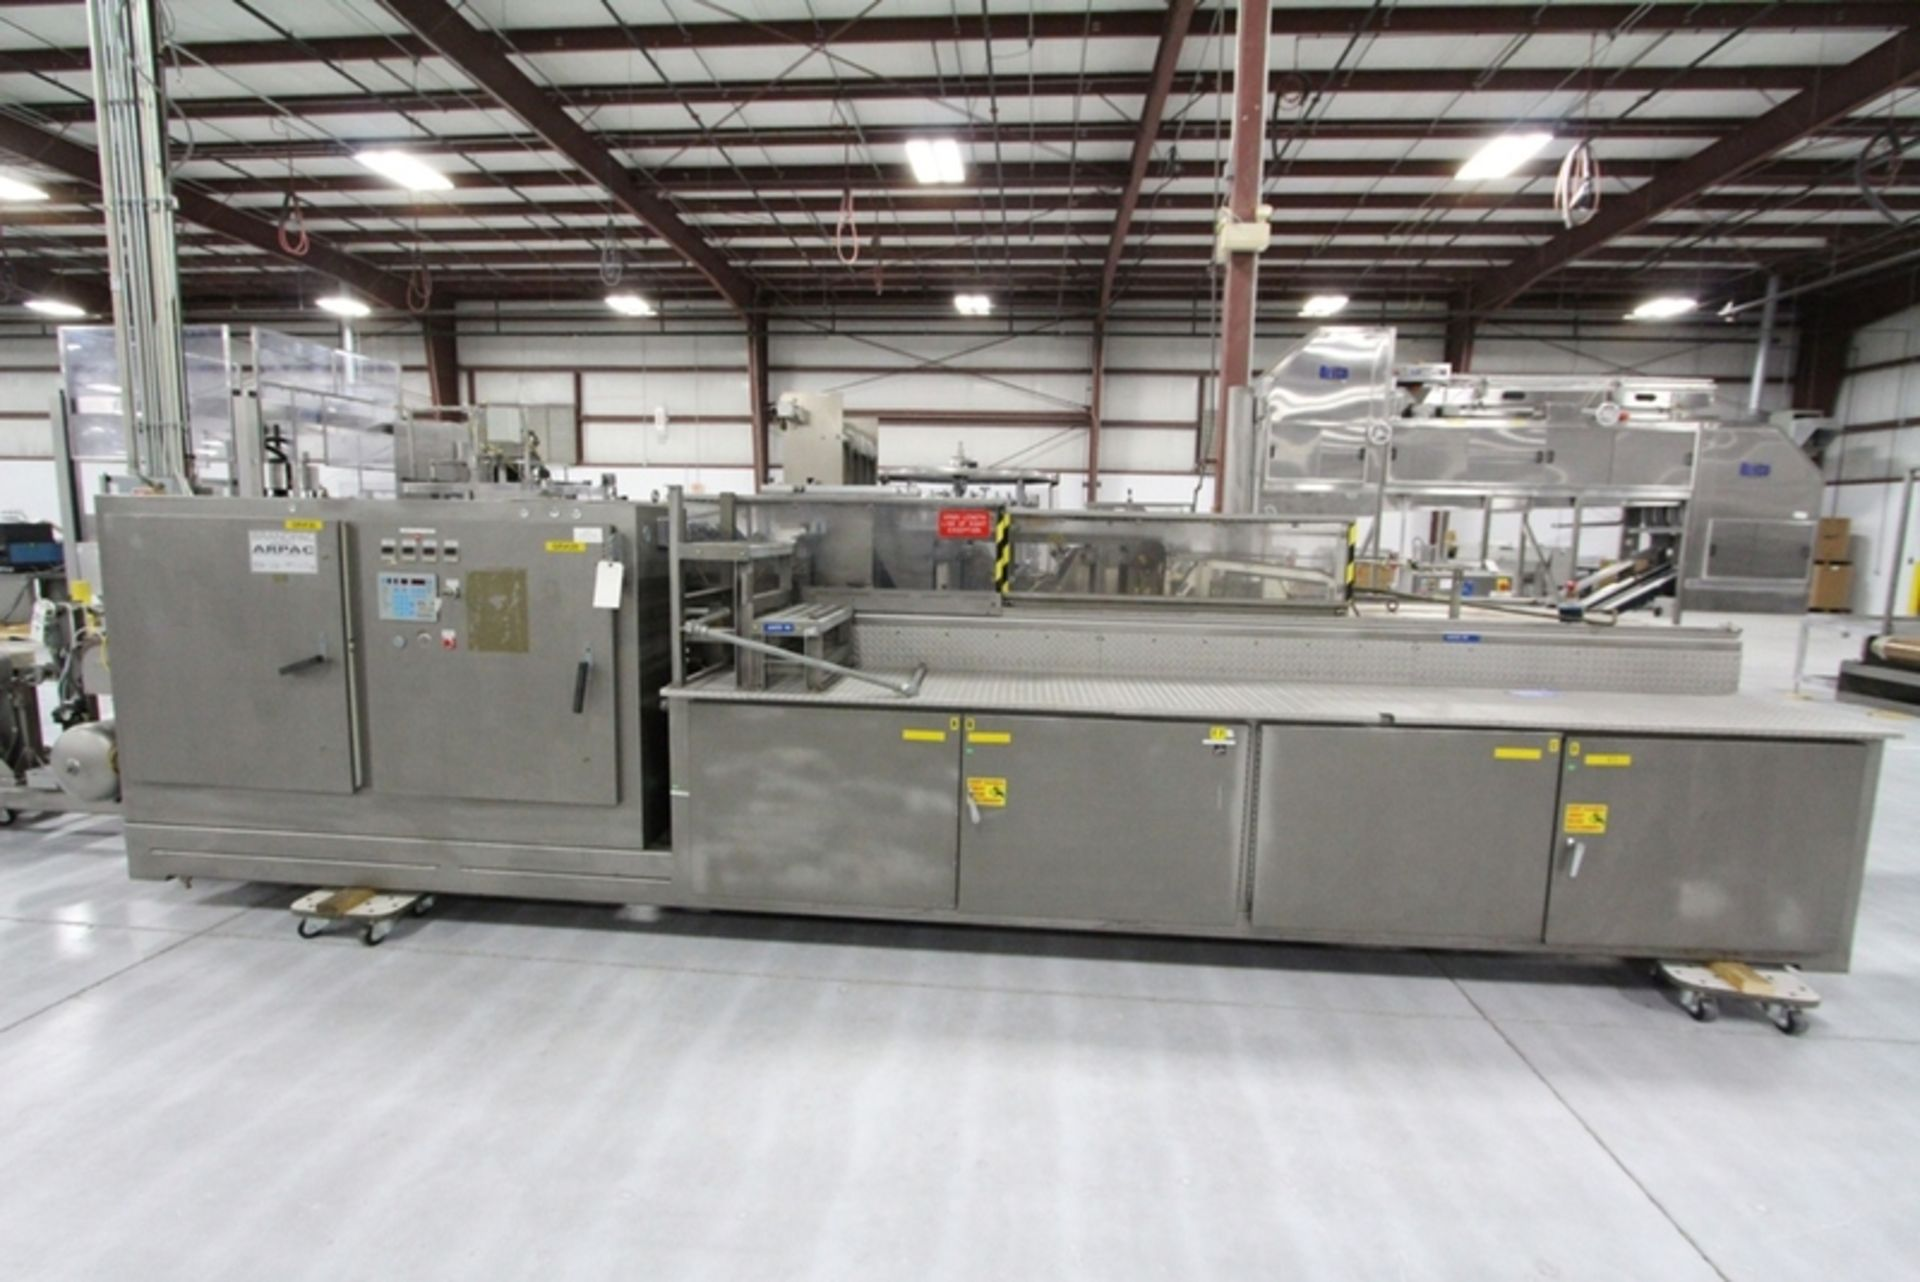 Arpac Shrink Wrapper Bundler with Heat Tunnel - Image 3 of 9